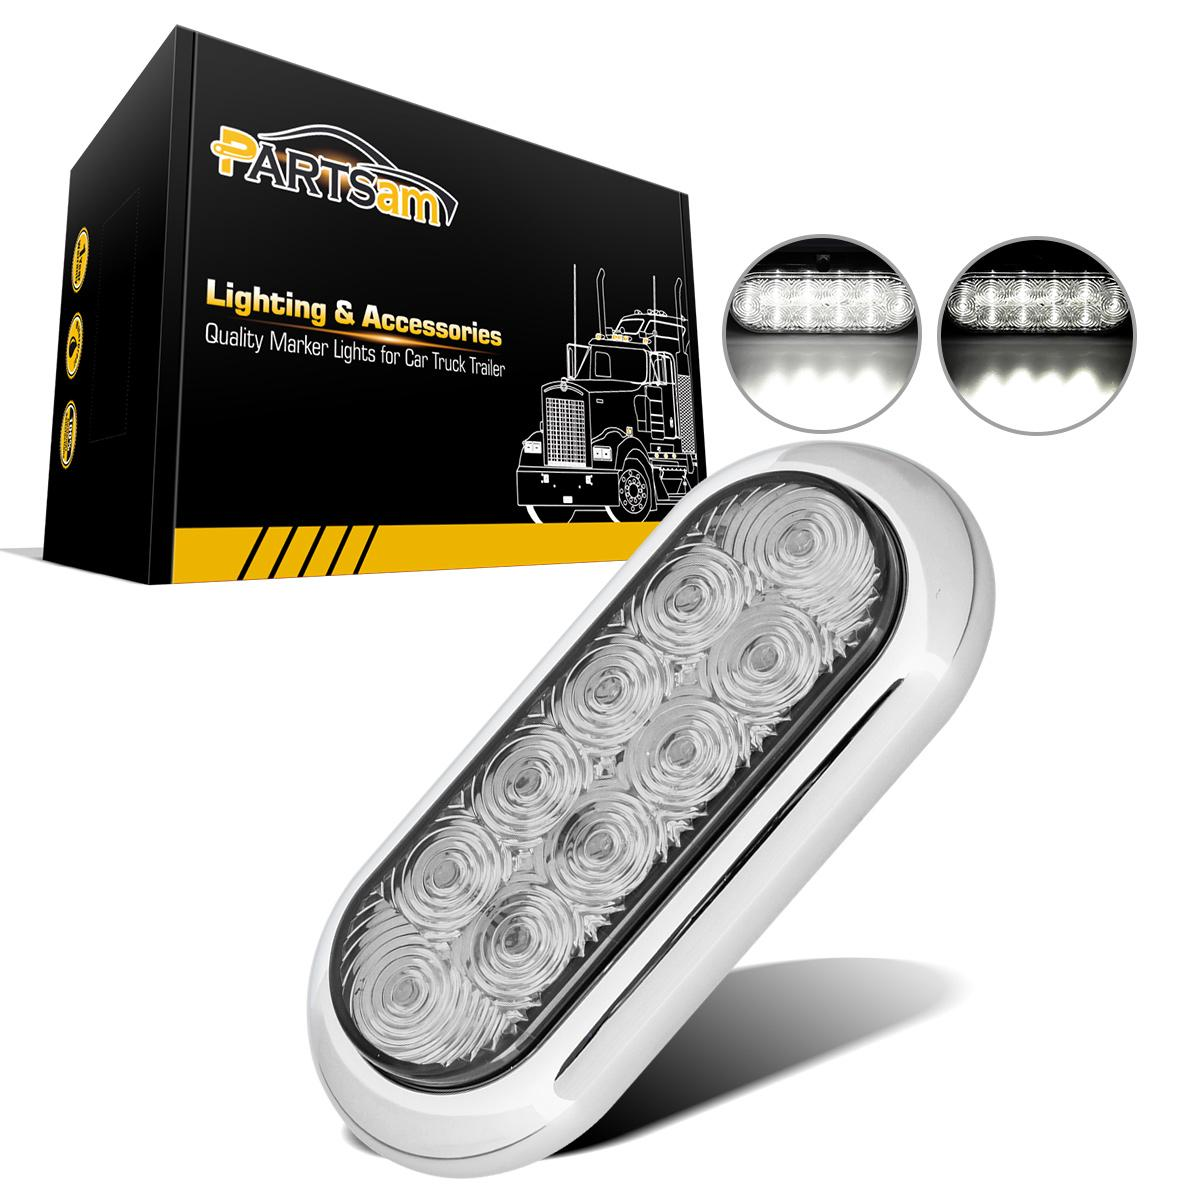 6 Quot Oval Chrome White 10 Led Flange Mount Stop Turn Tail